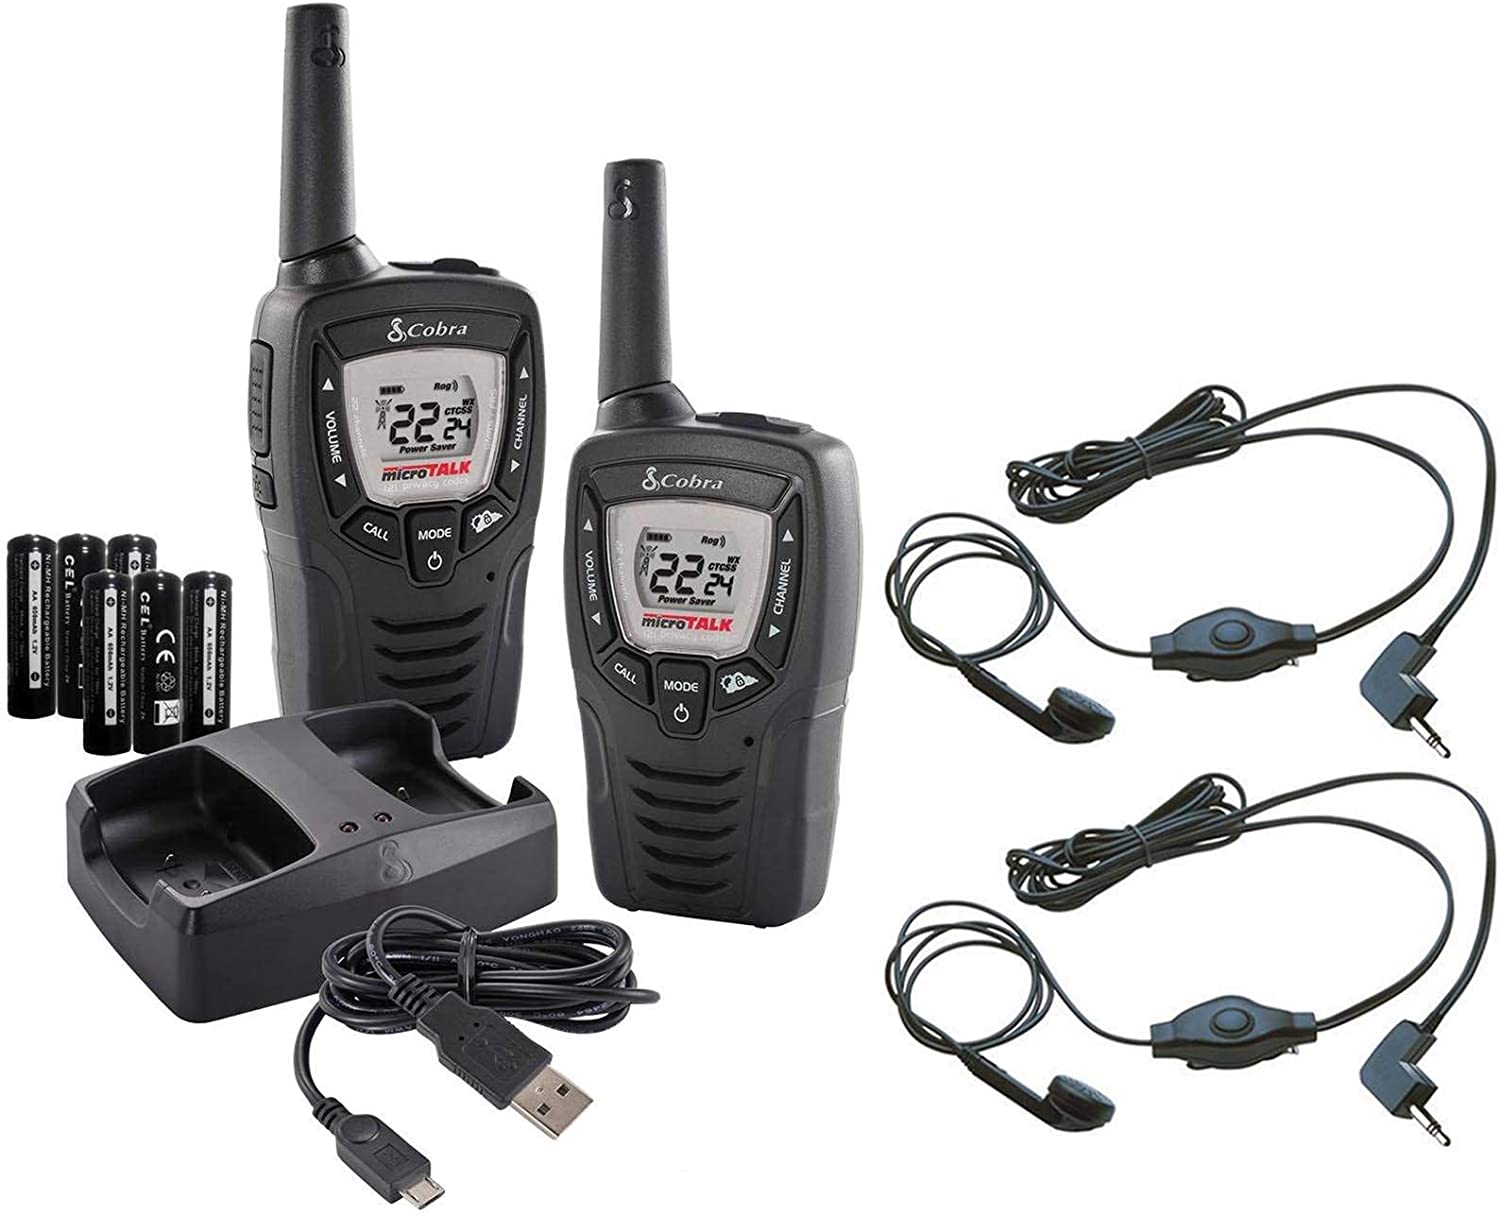 Cobra 23 Mile 22 Channel Walkie Talkie VOX NOAA Receiver Radios CX335 4 Pairs